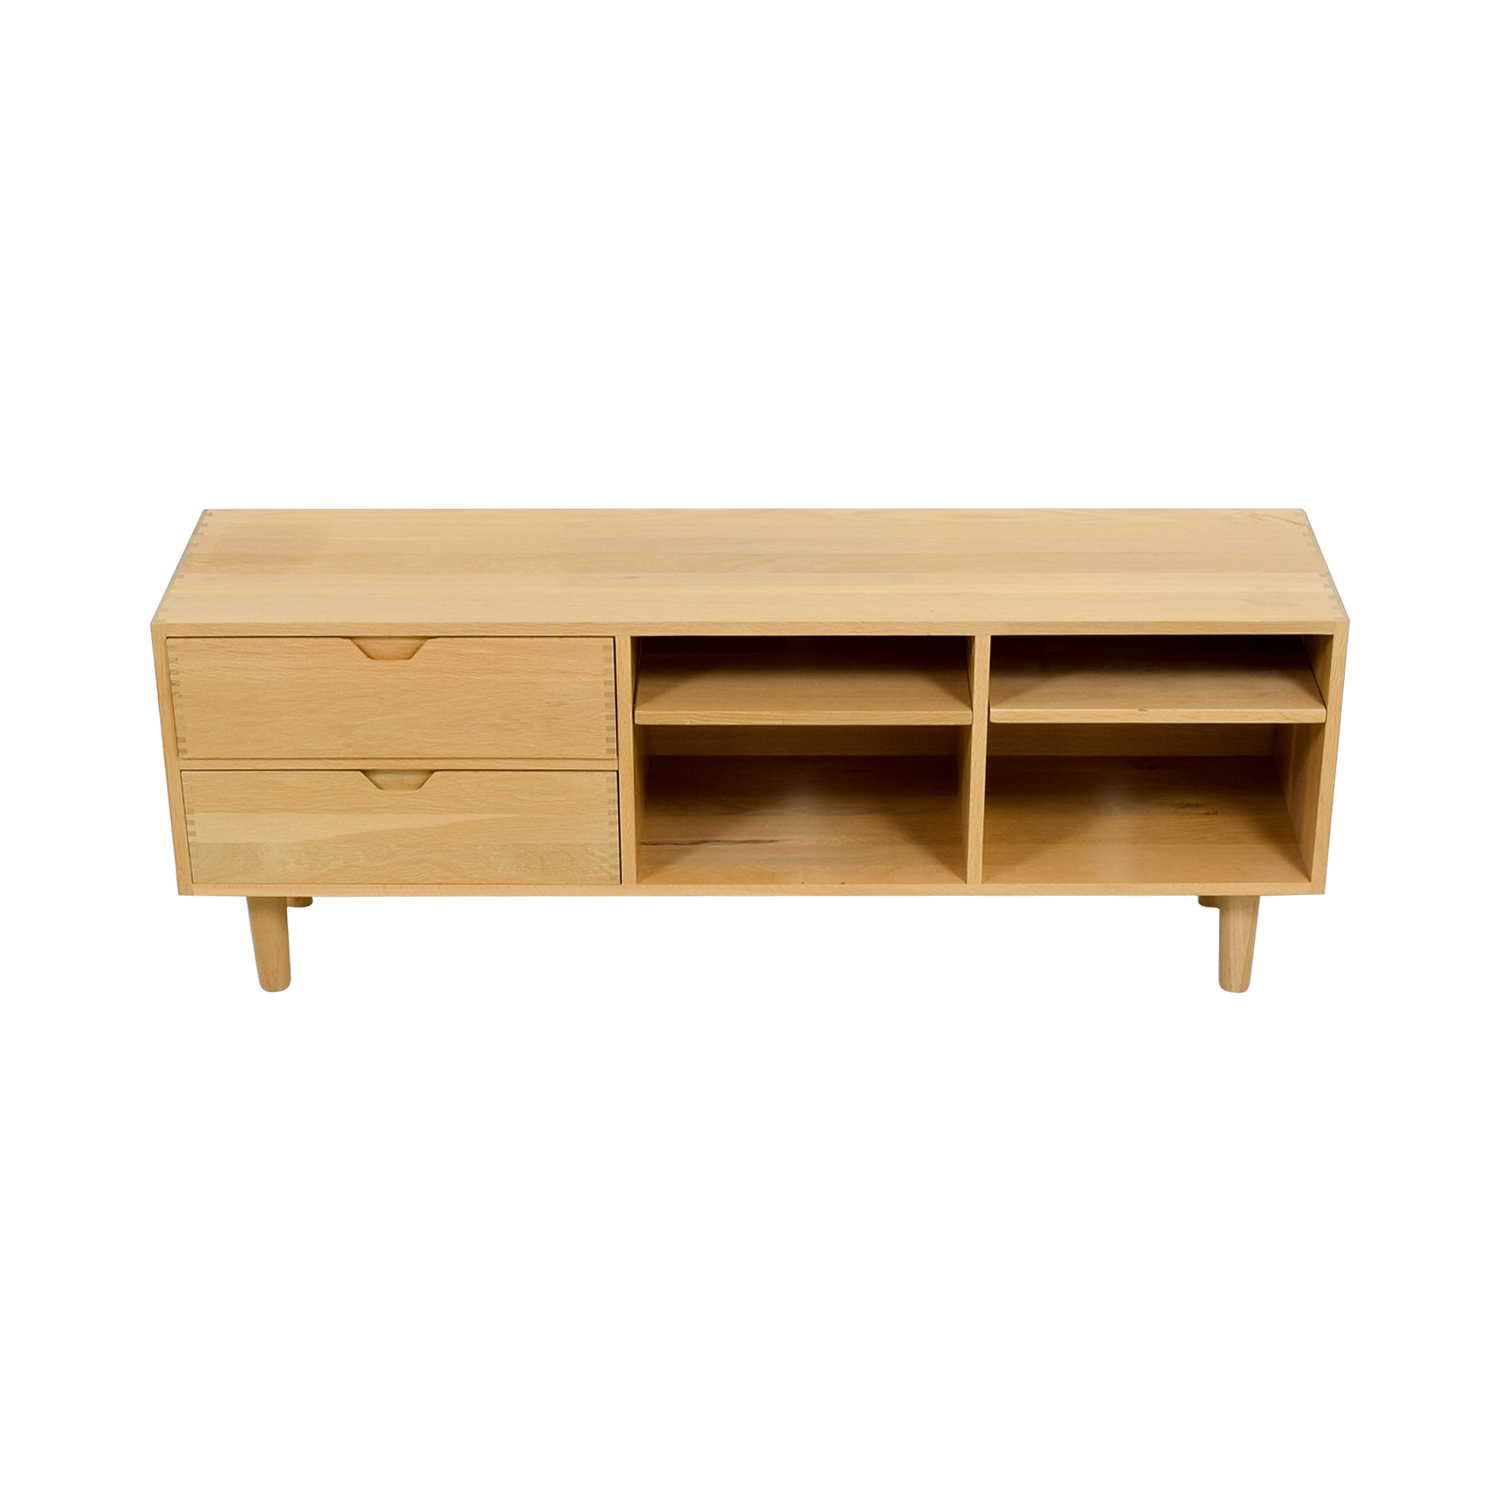 The Conran Shop for ABC Home The Conran Shop Media Console second hand